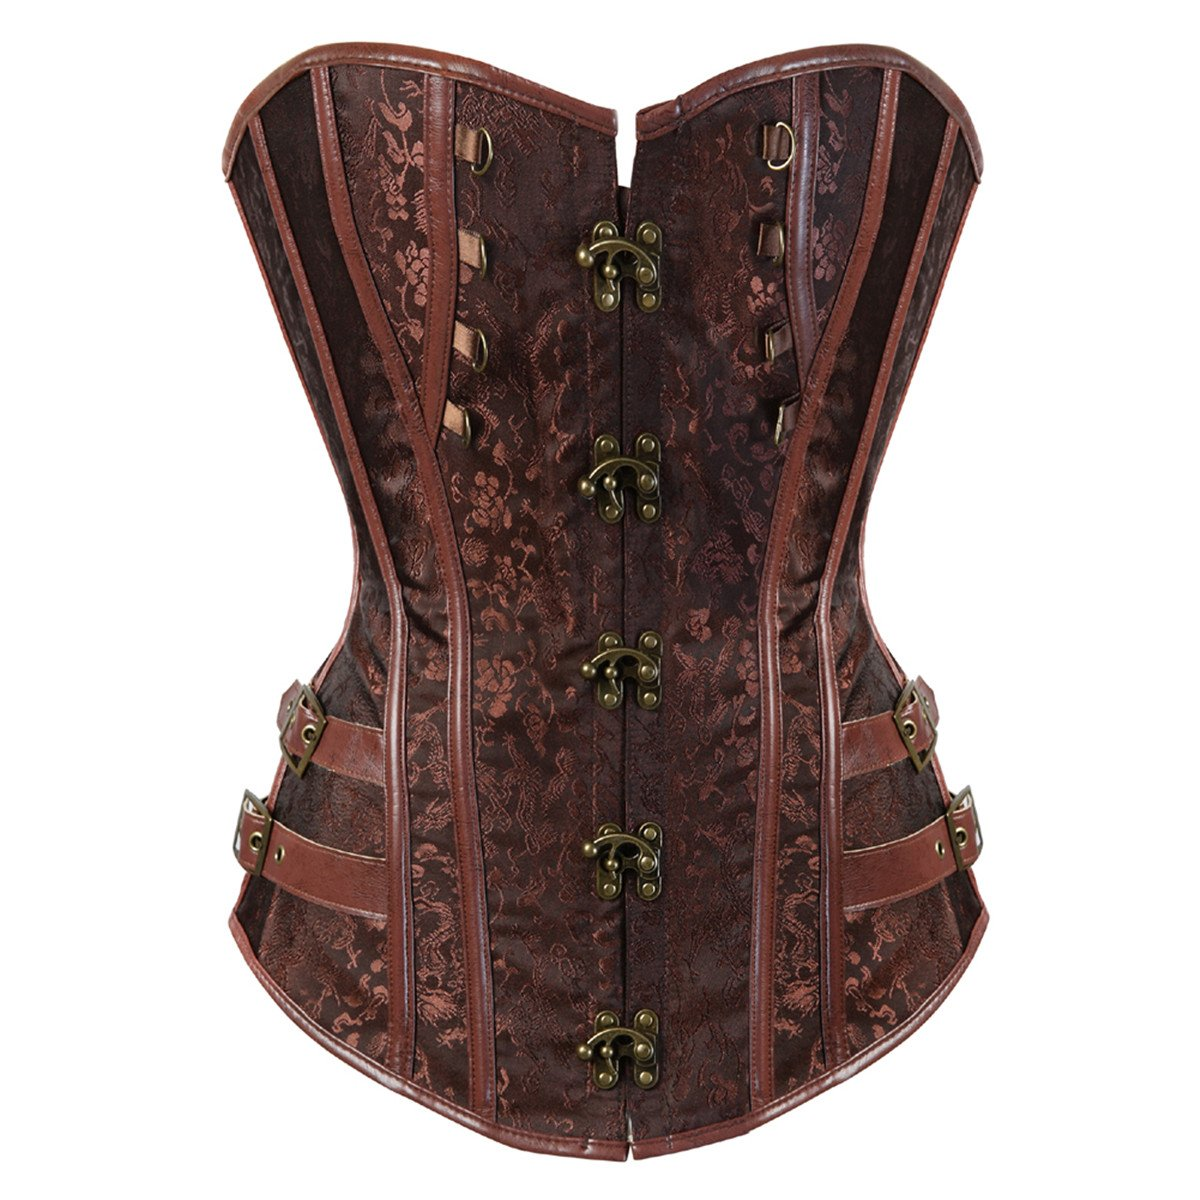 Steampunk Corsets & Belts | Underbust, Overbust Kranchungel Womens Punk Rock Faux Leather Corset Retro Goth Waist Cincher Basque Bustier $48.69 AT vintagedancer.com